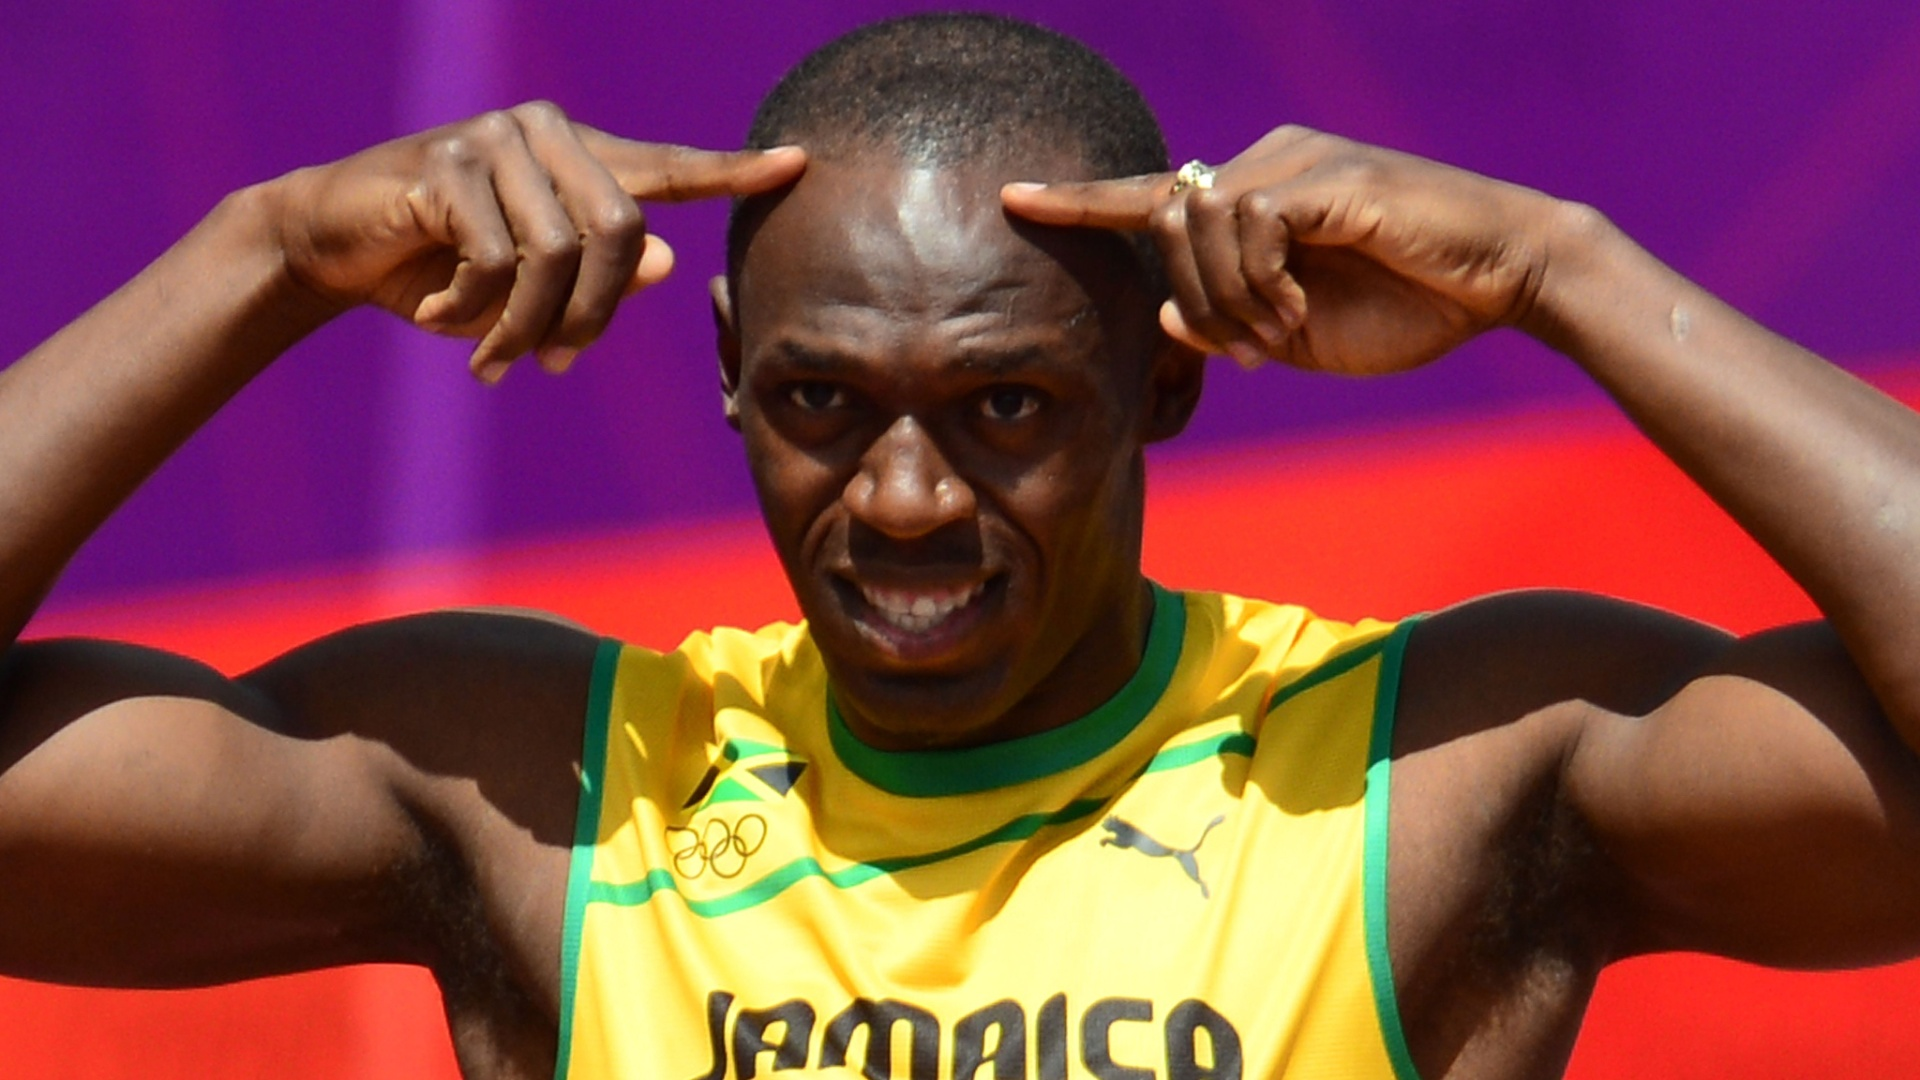 Jamaicano Usain Bolt faz gesto antes do competir na prova dos 100 m rasos no Estdio Olmpico de Londres